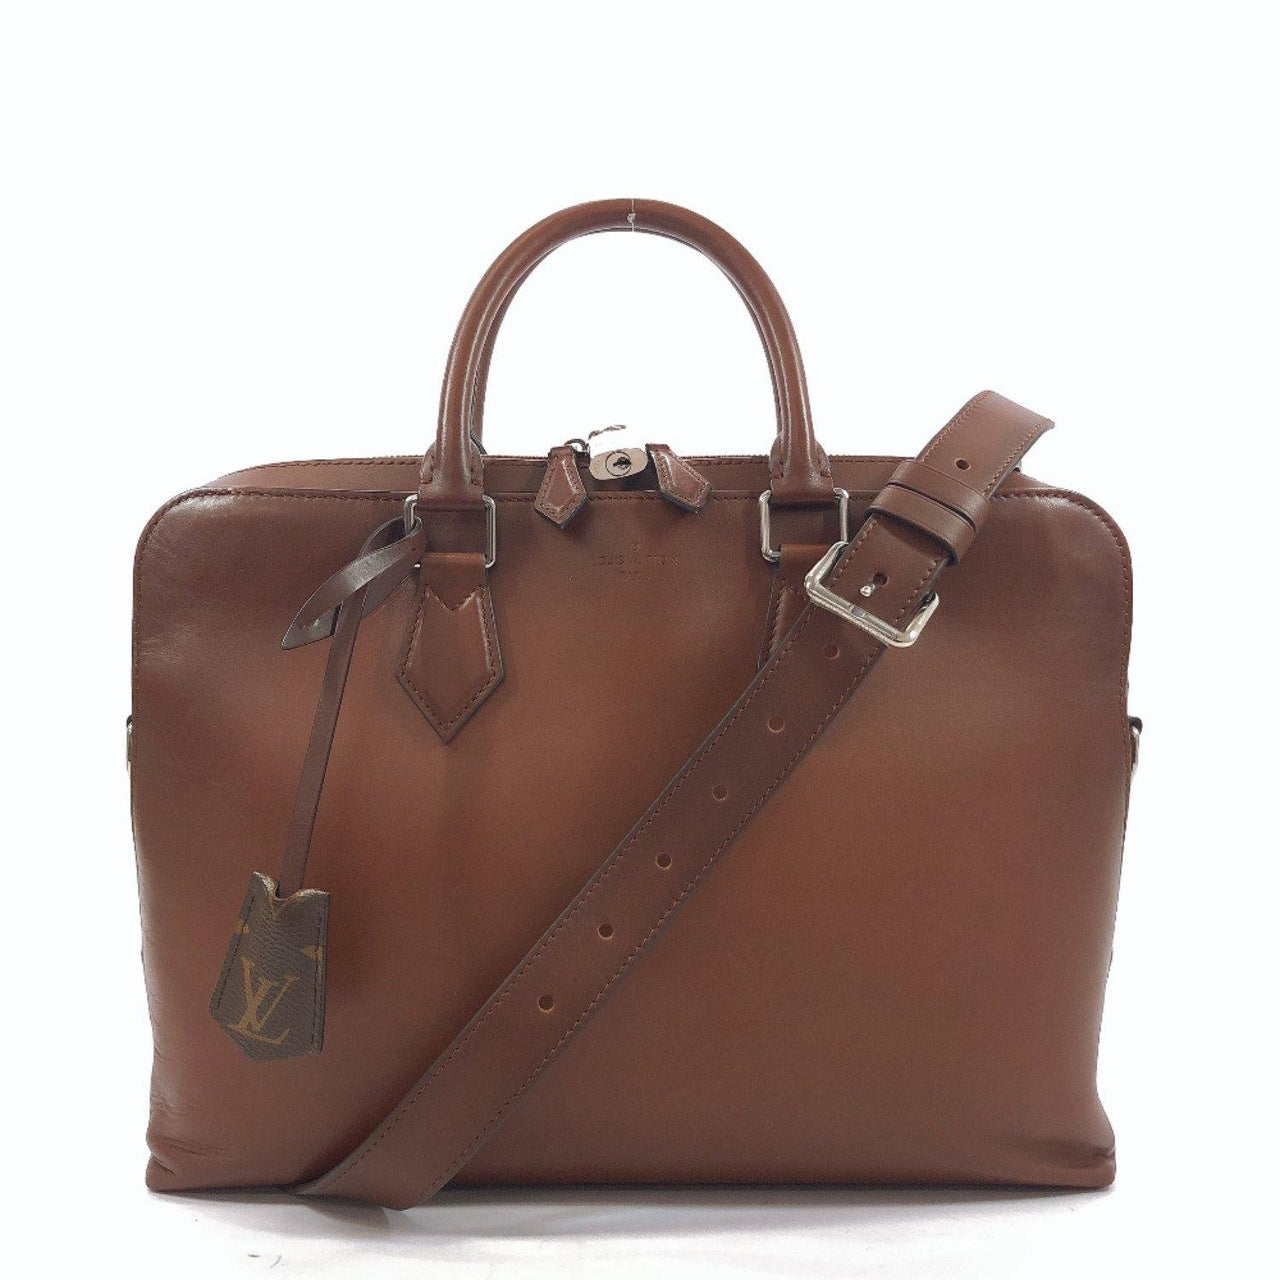 LOUIS VUITTON Business bag M51370 Armando Briefcase PM Ombre Calfskin Brown mens Used - JP-BRANDS.com